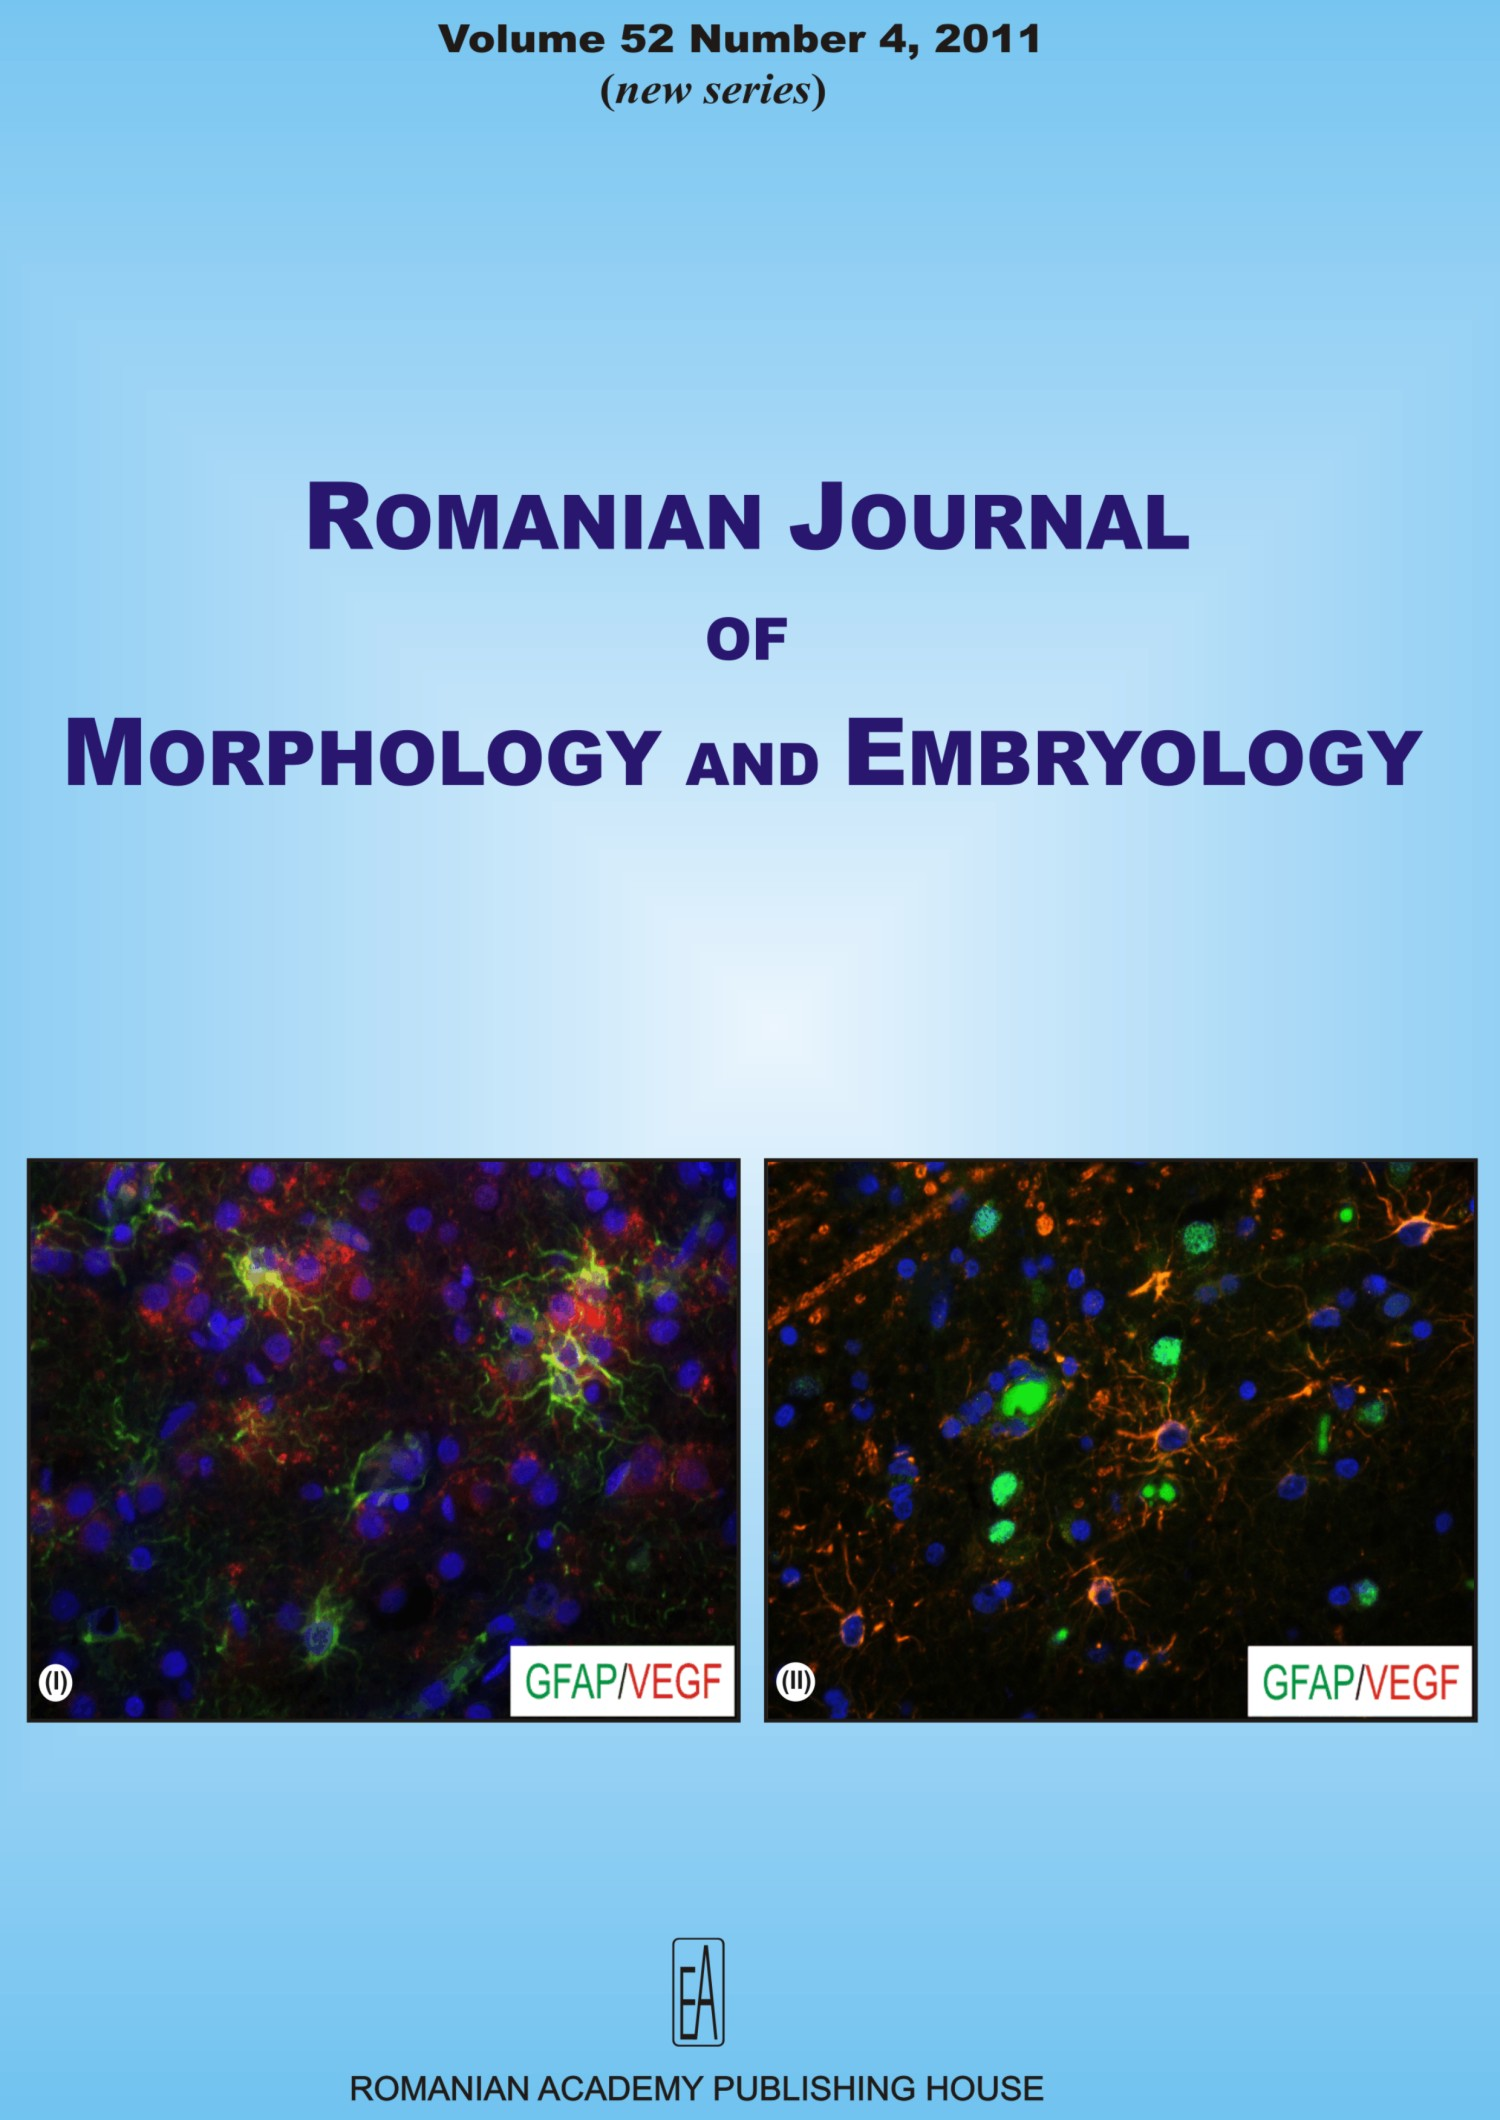 Romanian Journal of Morphology and Embryology, vol. 52 no. 4, 2011